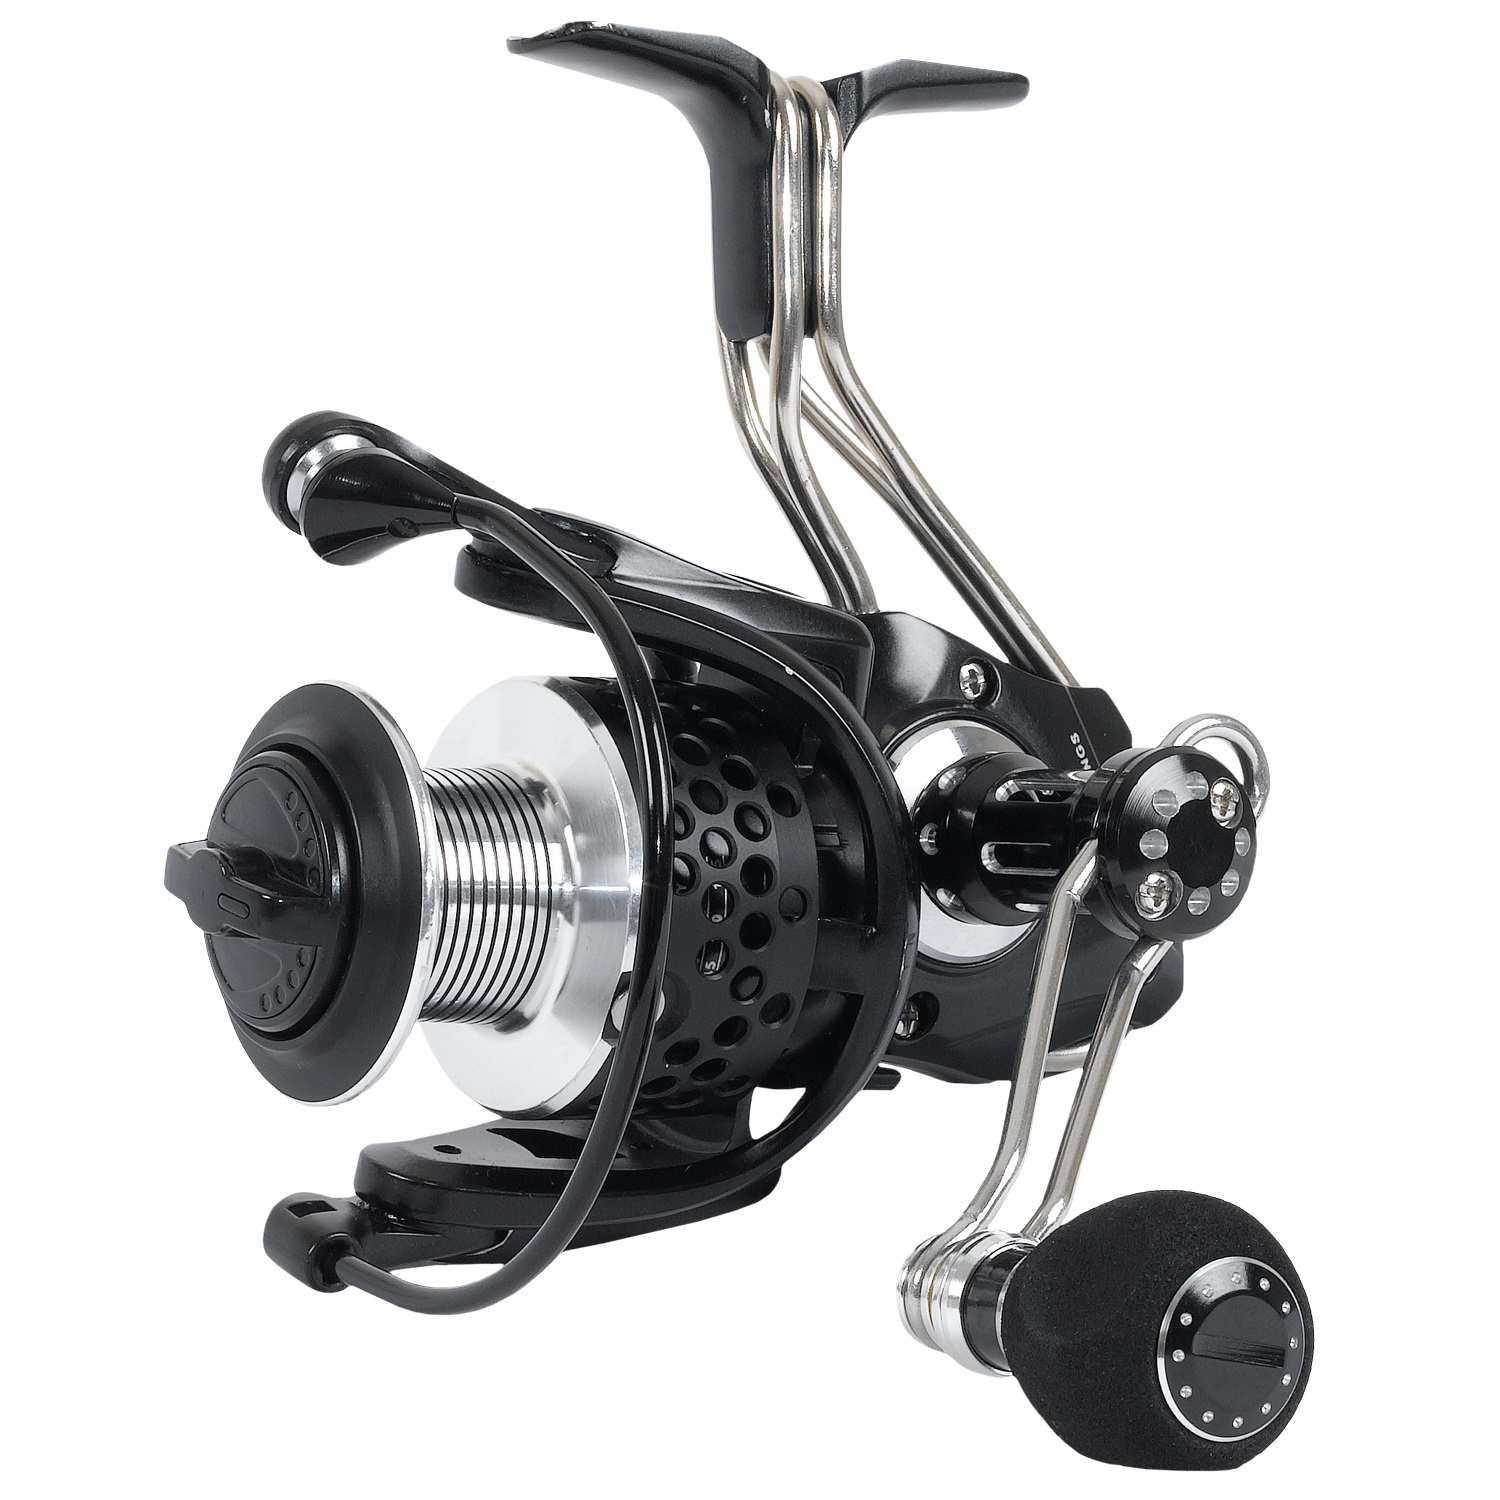 Ardent wire spinning reel 4000 for Ardent fishing reels